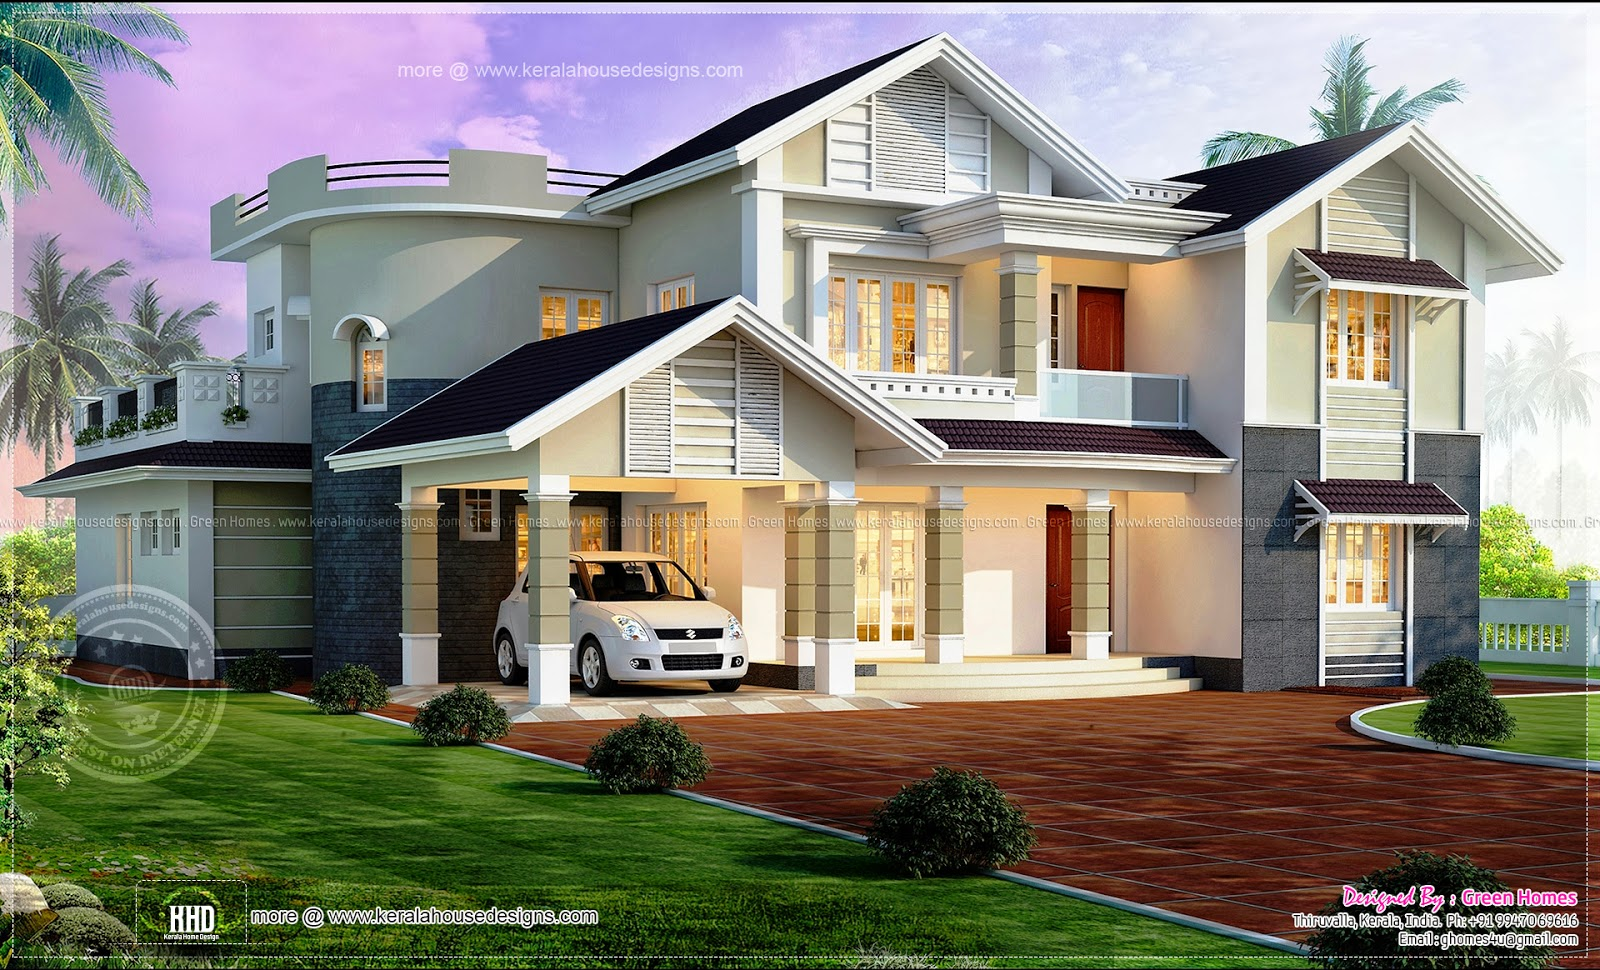 Beautiful 4 bedroom house exterior elevation kerala home - Best exterior design of house in india ...